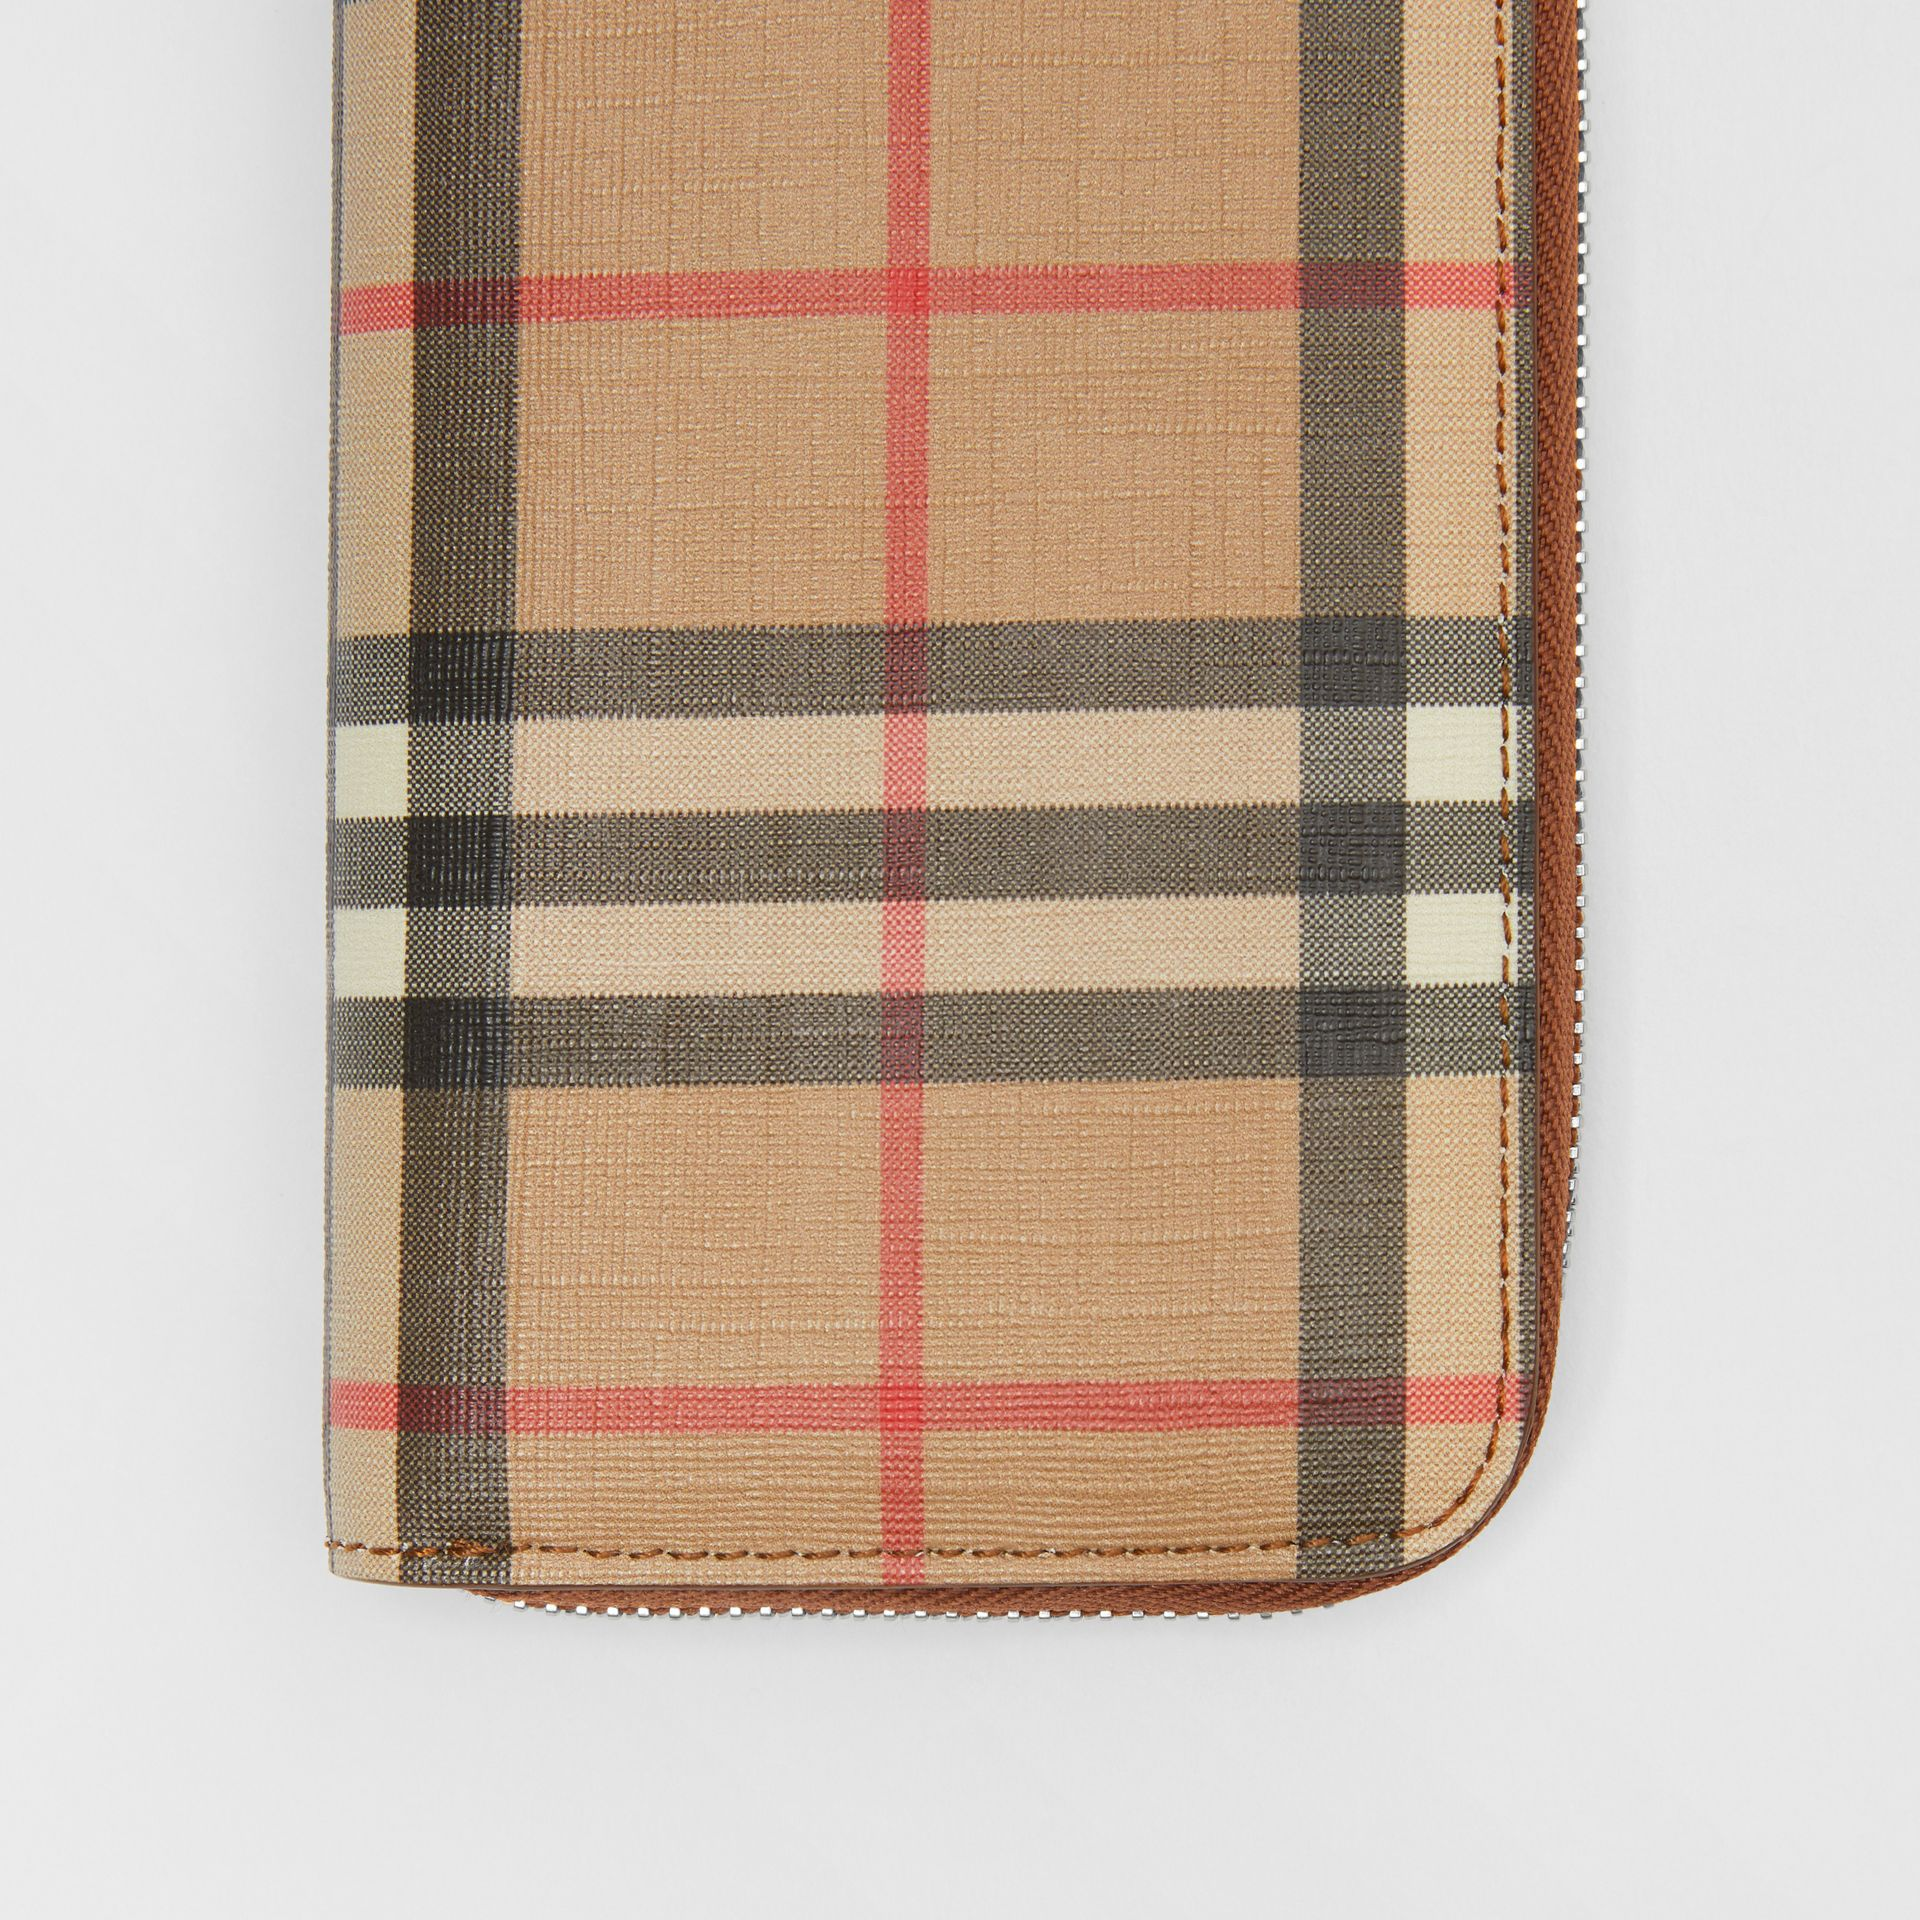 Vintage Check and Leather Ziparound Wallet in Malt Brown - Women | Burberry Australia - gallery image 1